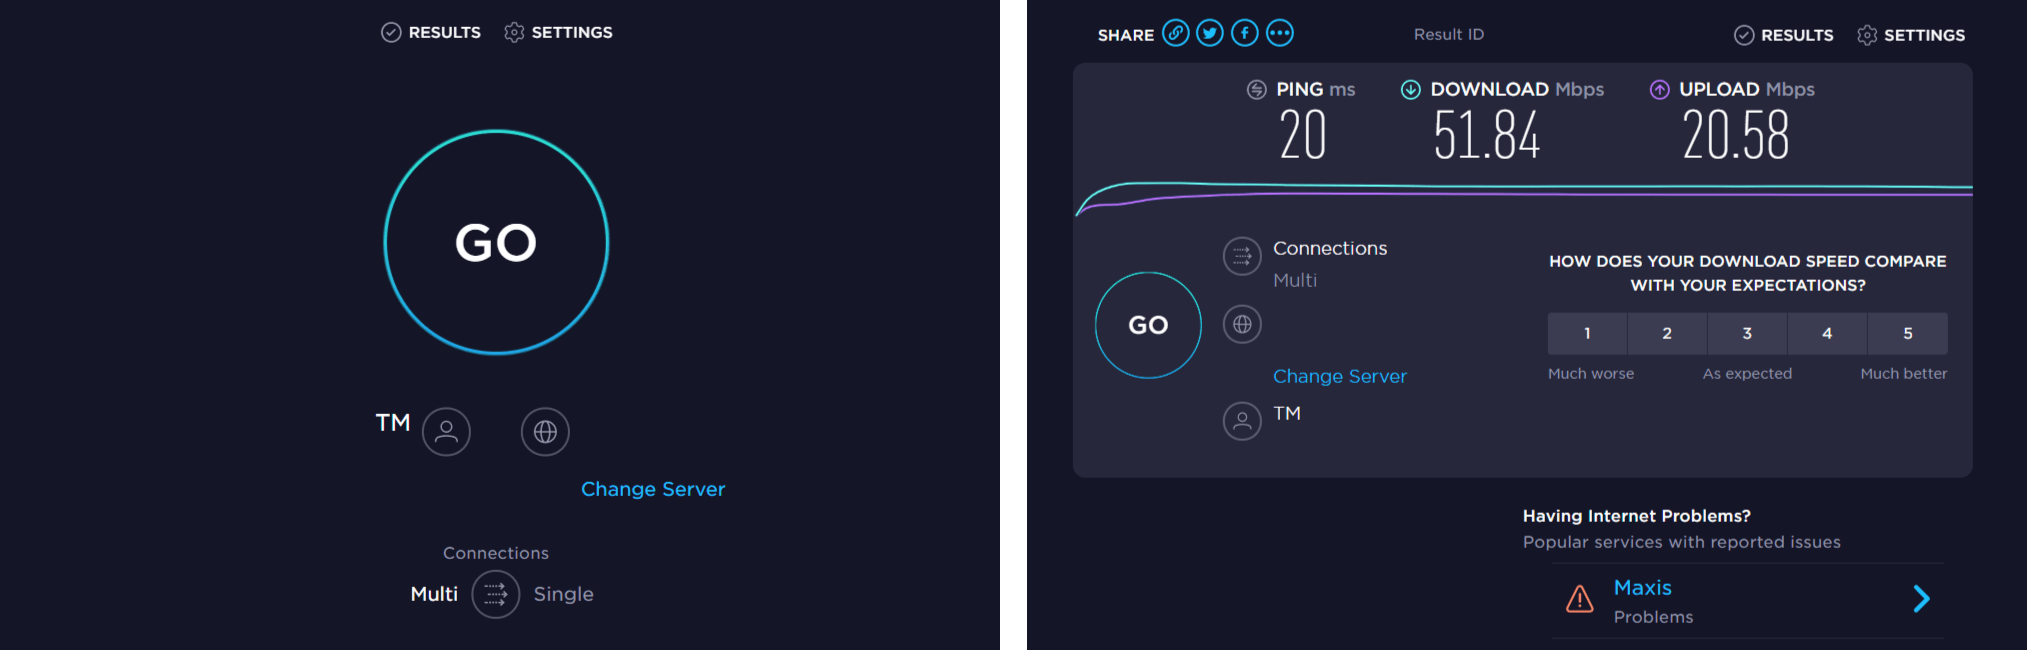 check internet speed to fix zoom screen sharing not working